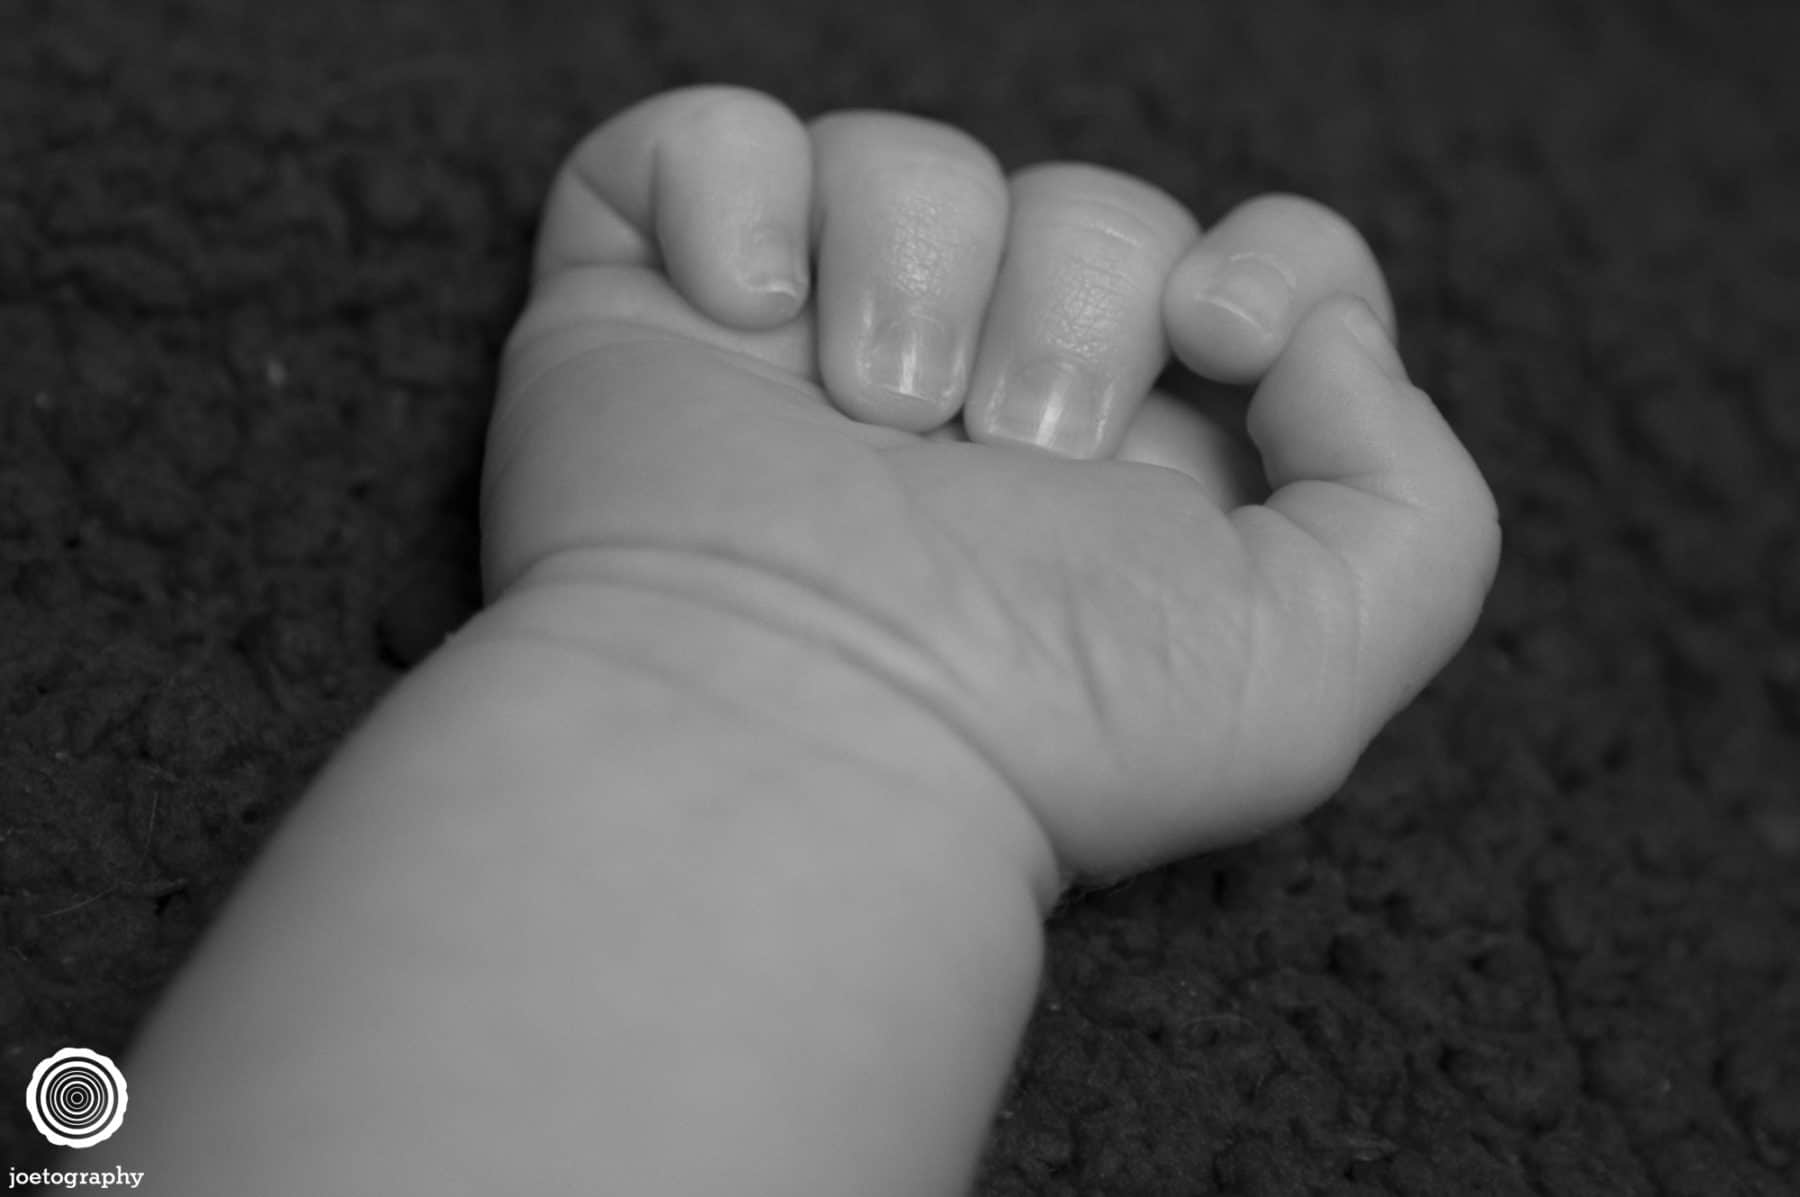 chandler-newborn-photography-indianapolis-blink1-43